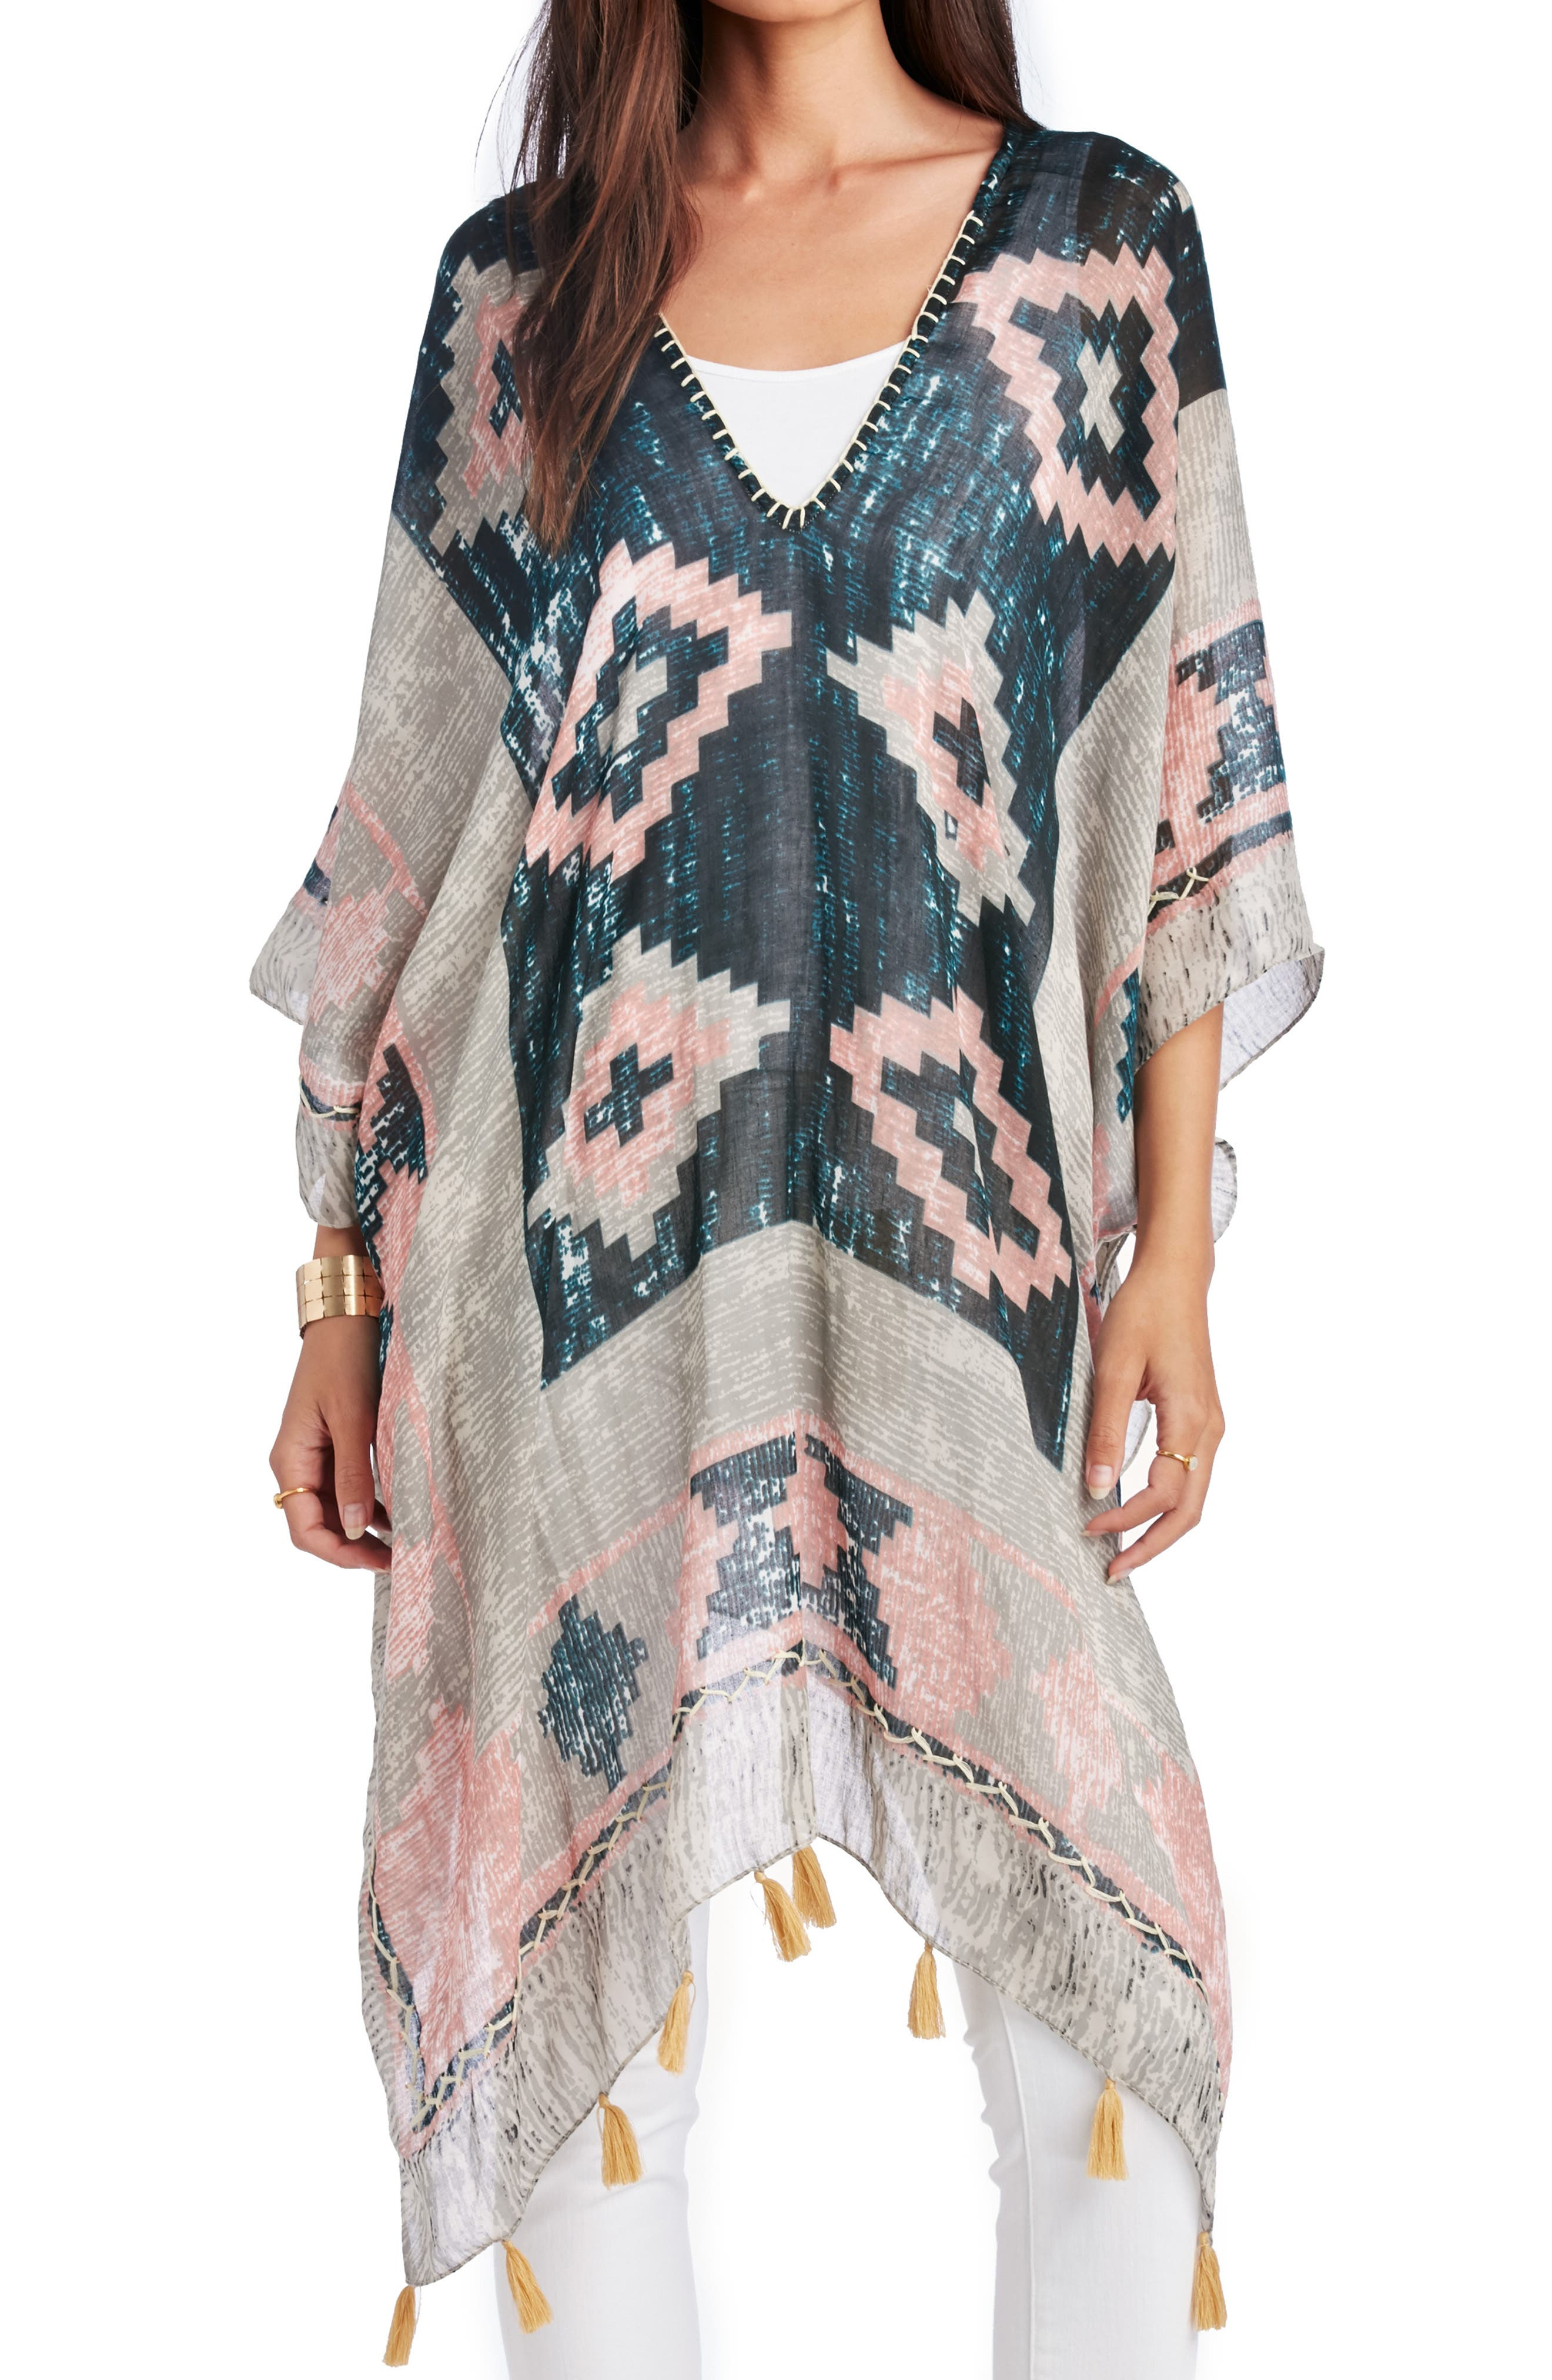 SOLE SOCIETY, Geo Print Tassel Caftan, Main thumbnail 1, color, MULTI